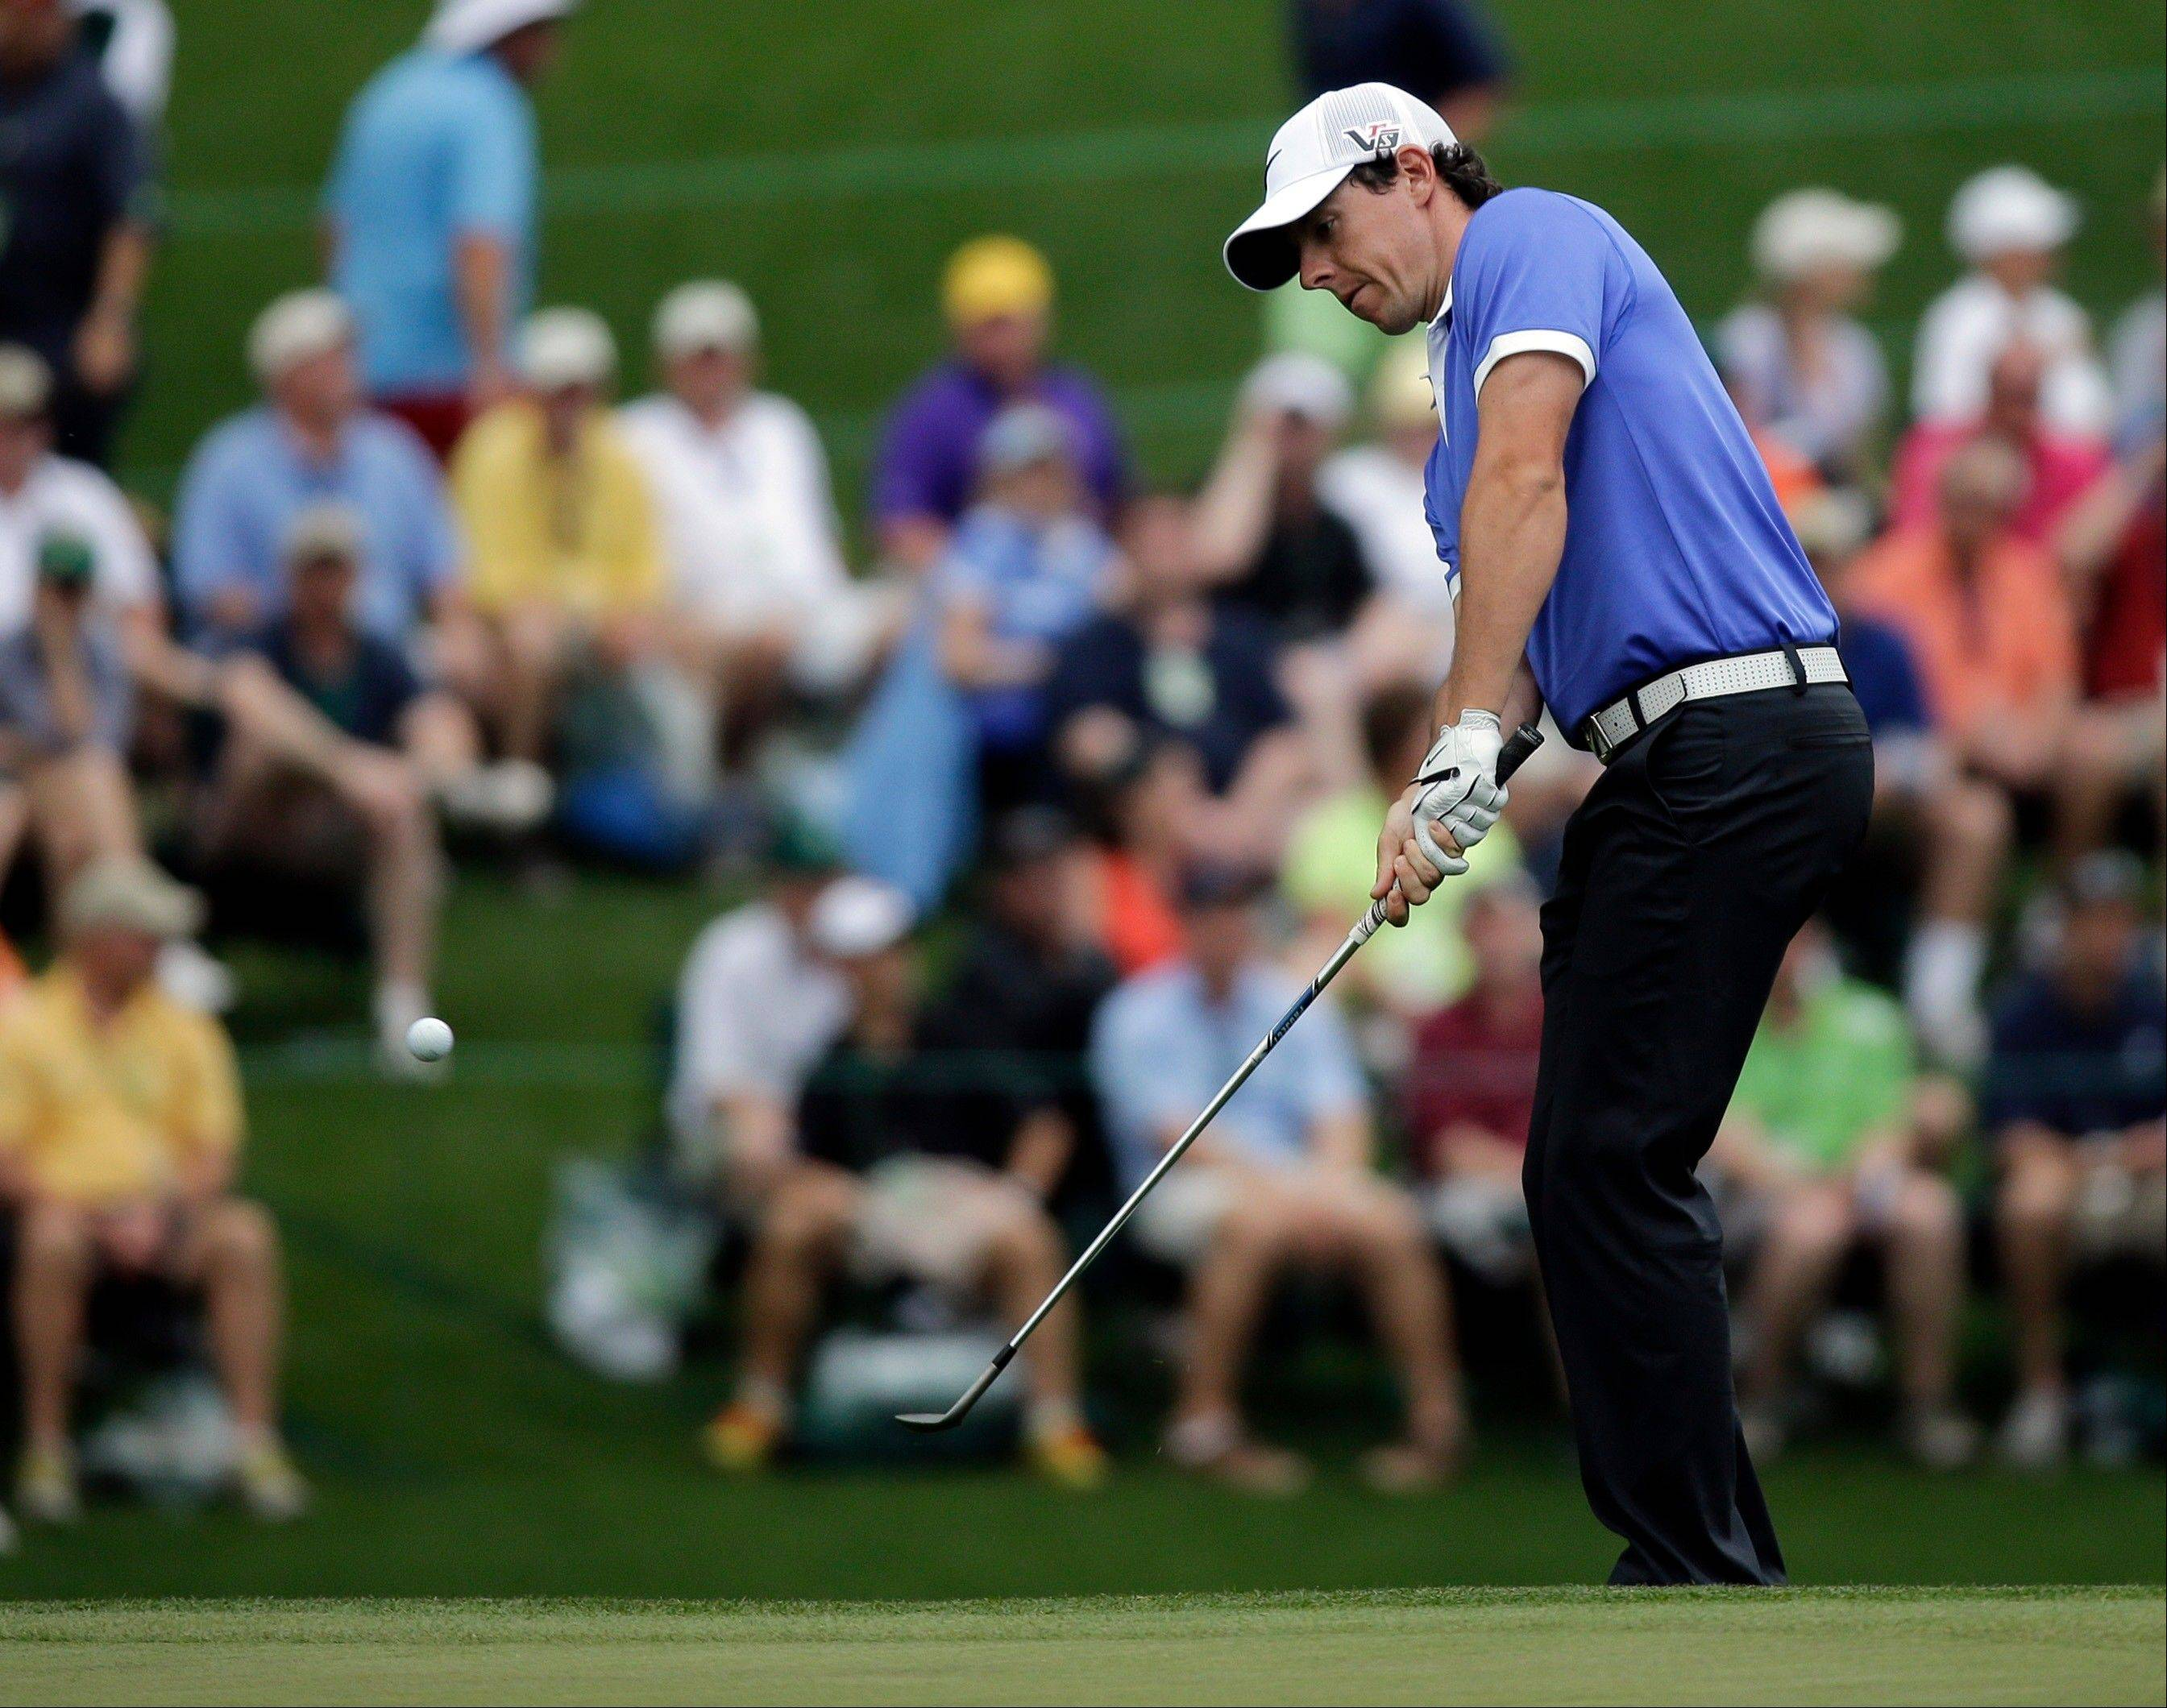 Rory McIlroy, of Northern Ireland, chips to the 15th green during the first round of the Masters golf tournament Thursday, April 11, 2013, in Augusta, Ga. (AP Photo/David J. Phillip)